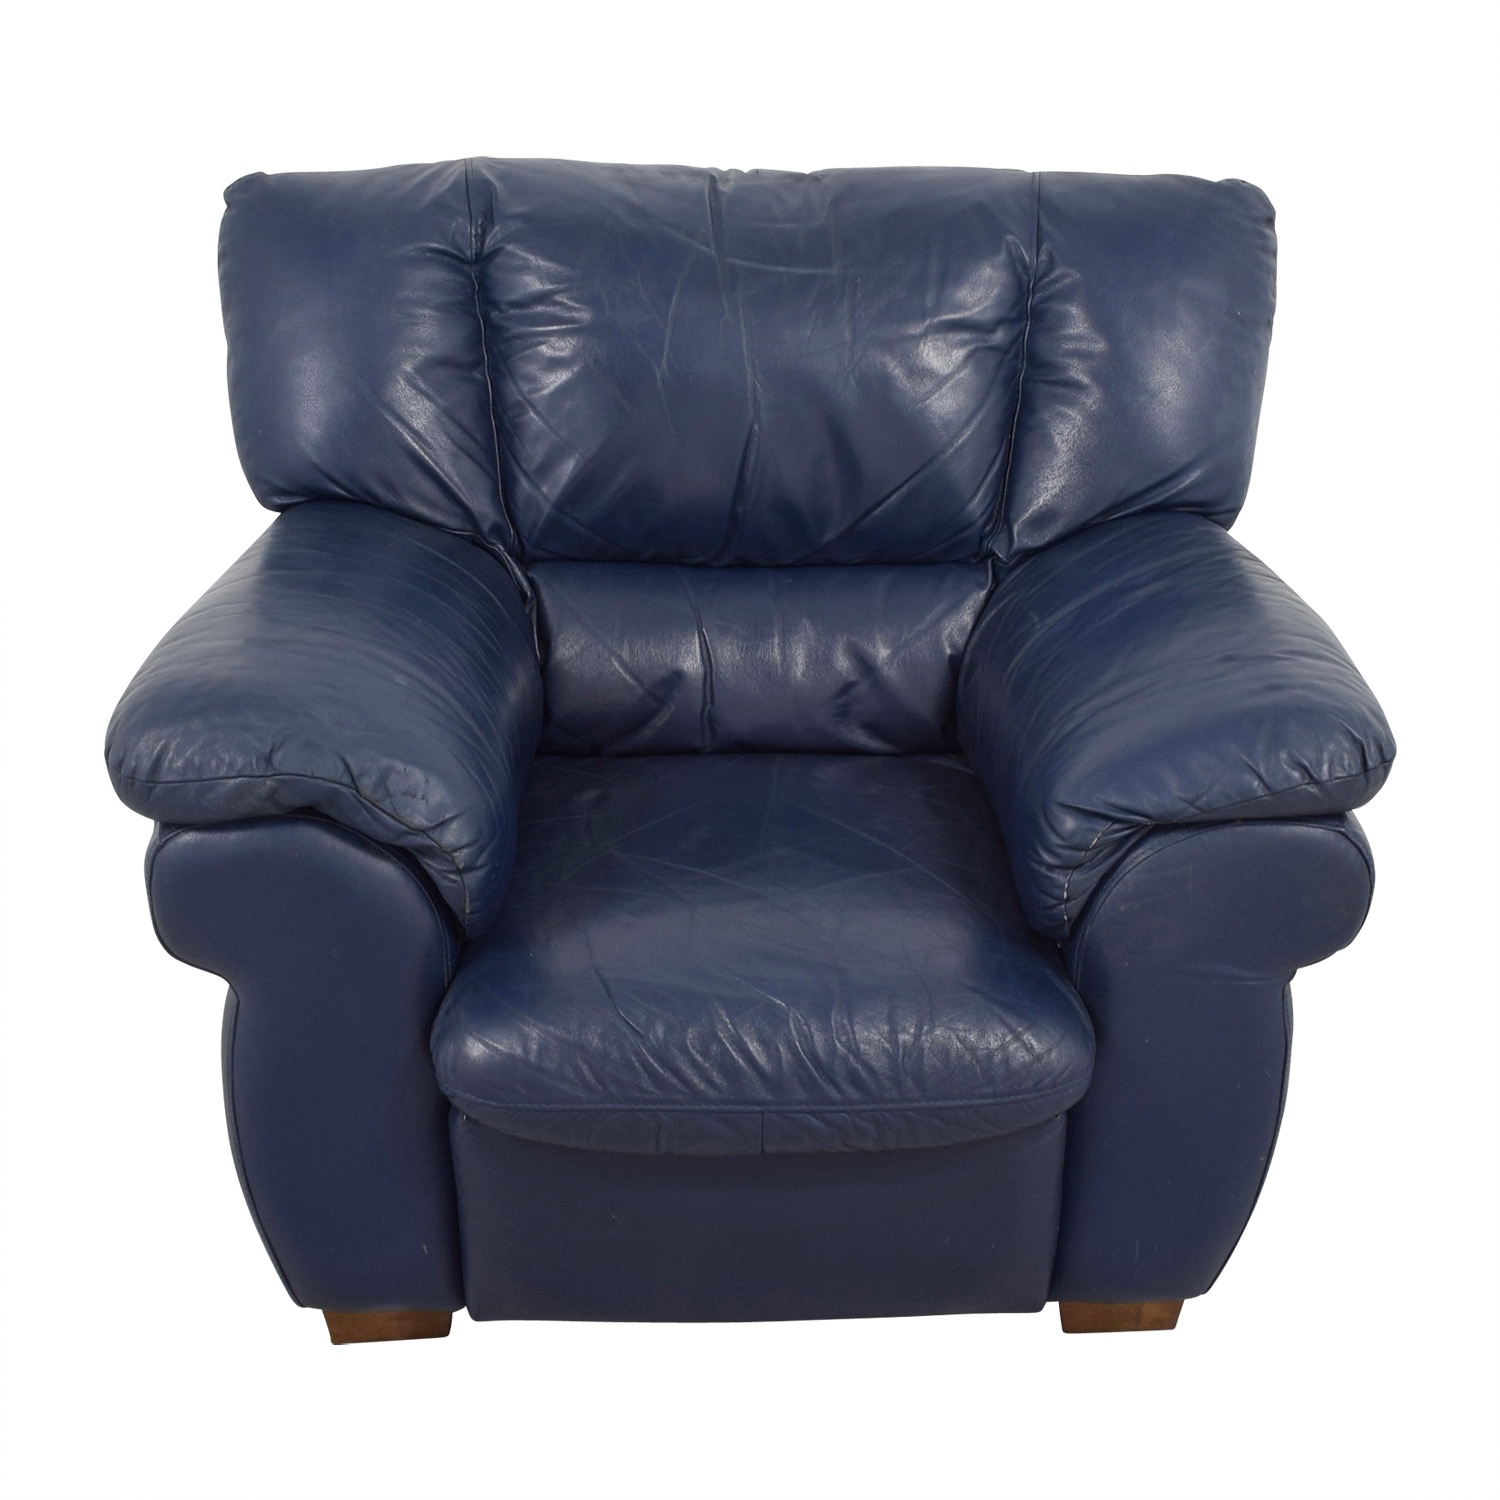 90 Off Macy S Macy S Navy Blue Leather Sofa Chair Chairs